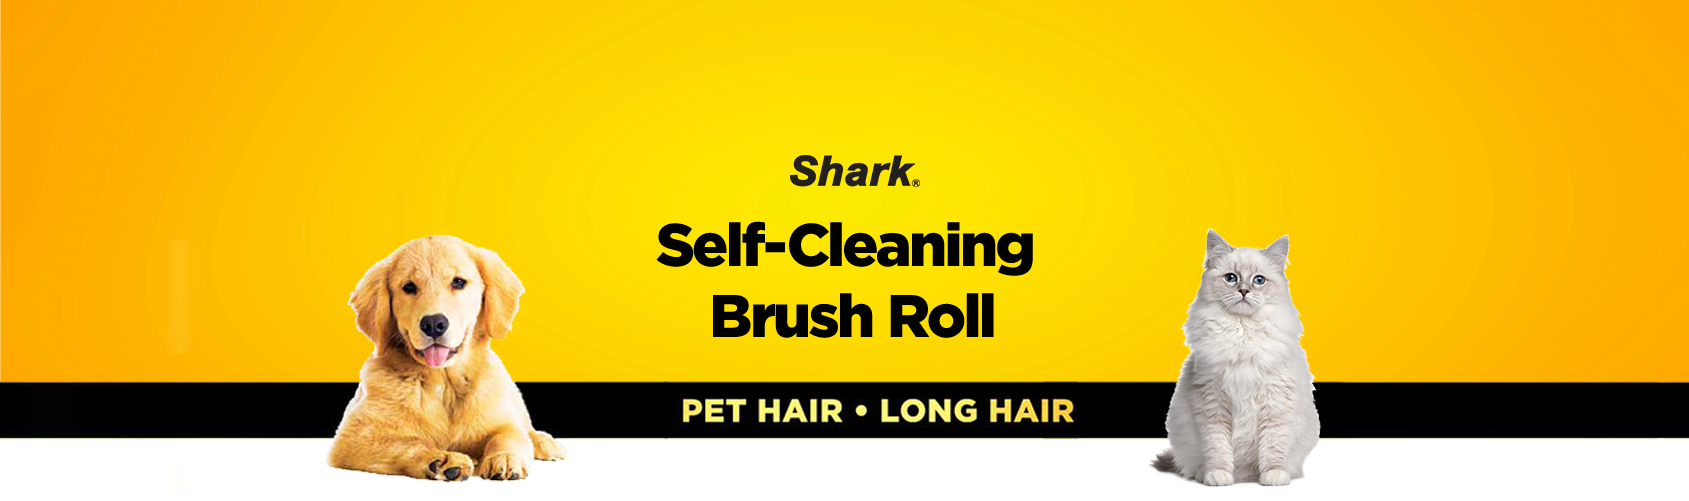 self-cleaning brush roll